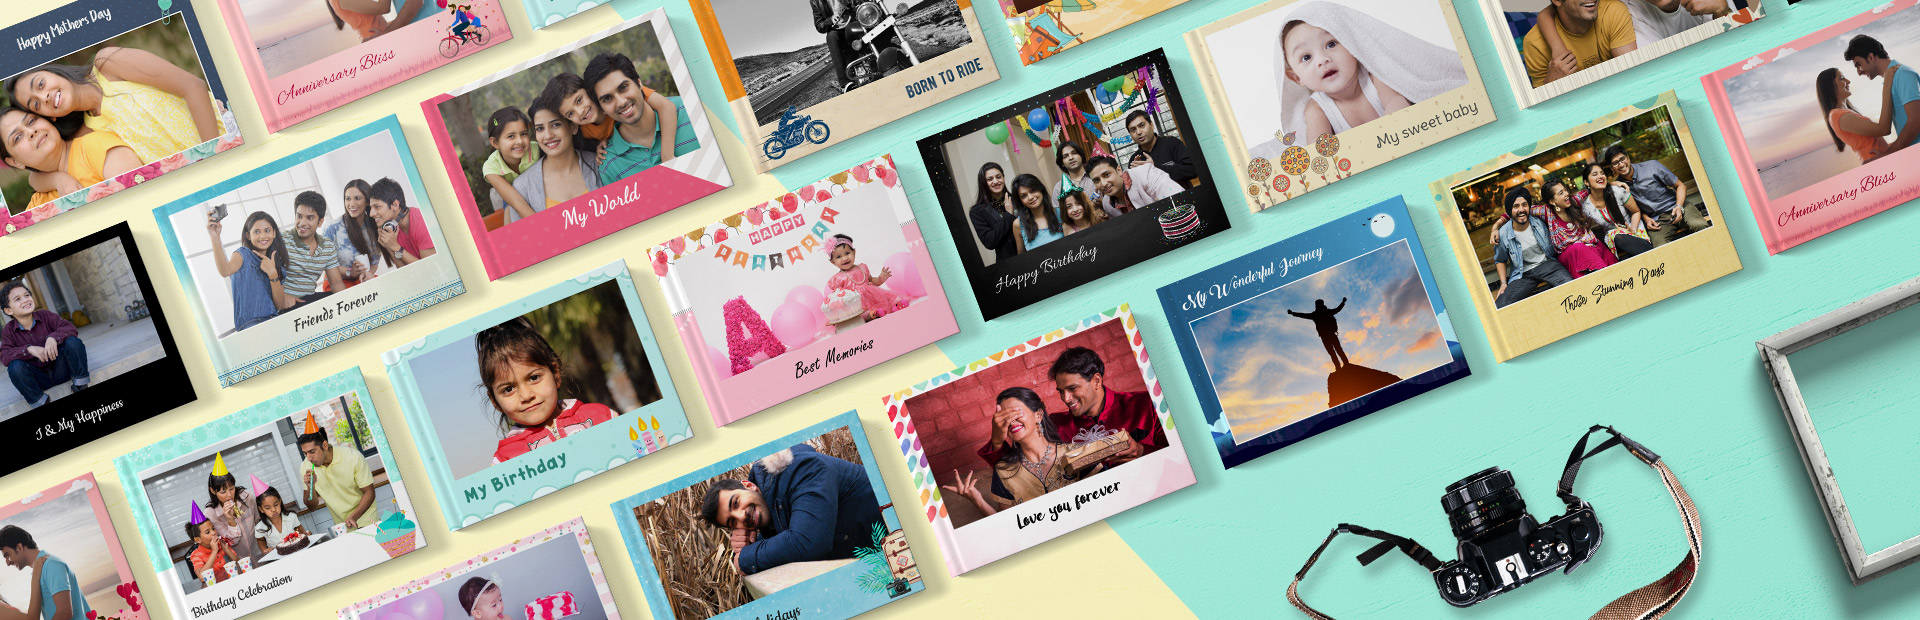 Personalized Photo Books Printing Online - Picsy